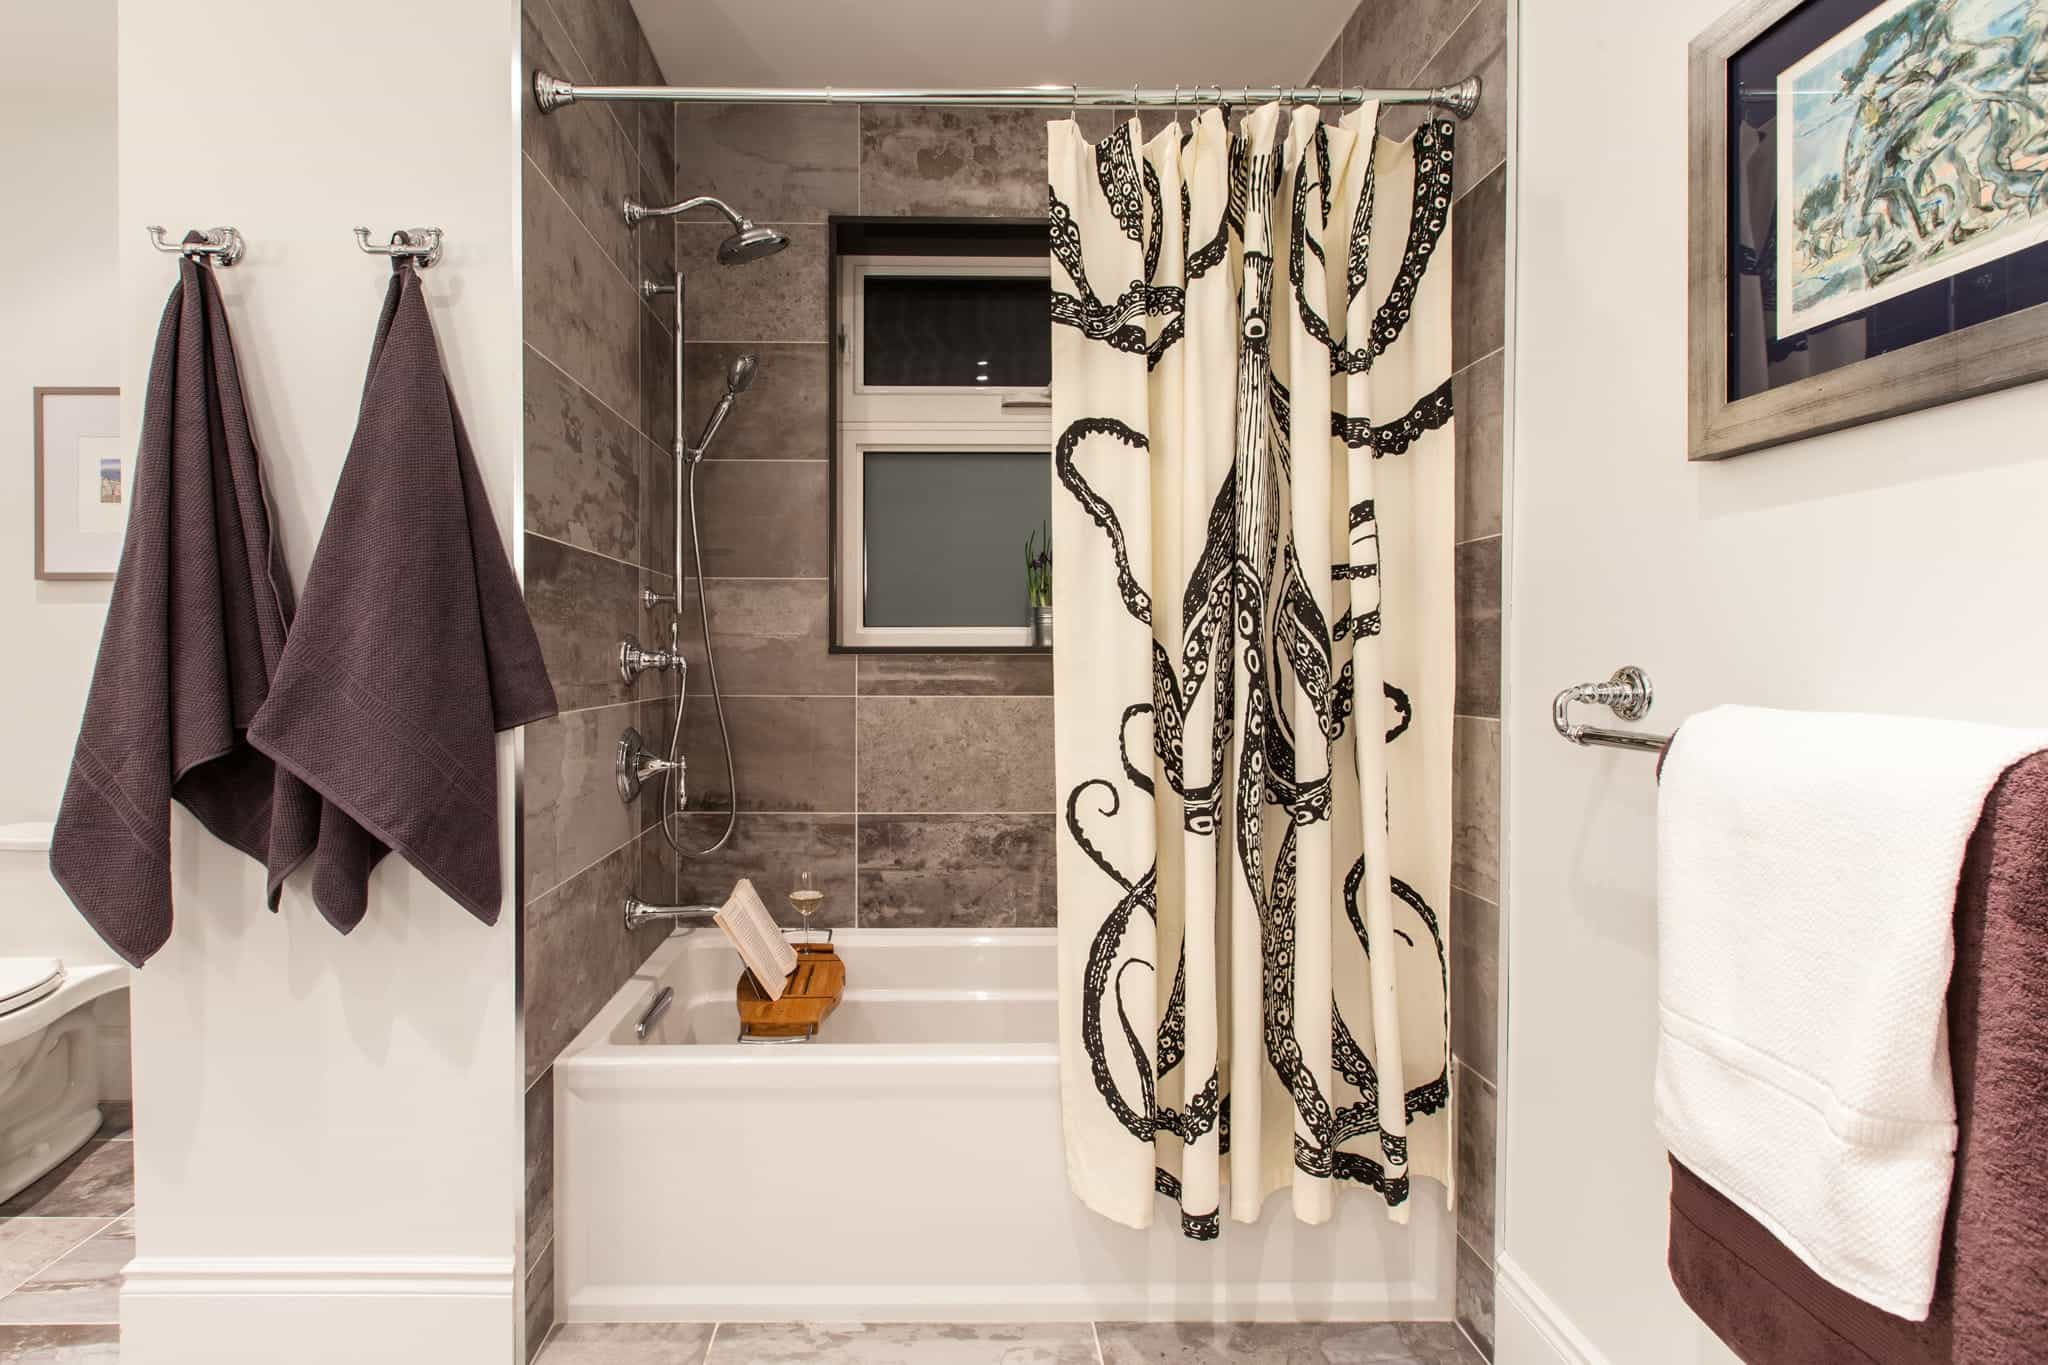 Contemporary Bathtub And Shower Combo With Marble Wall (View 15 of 16)